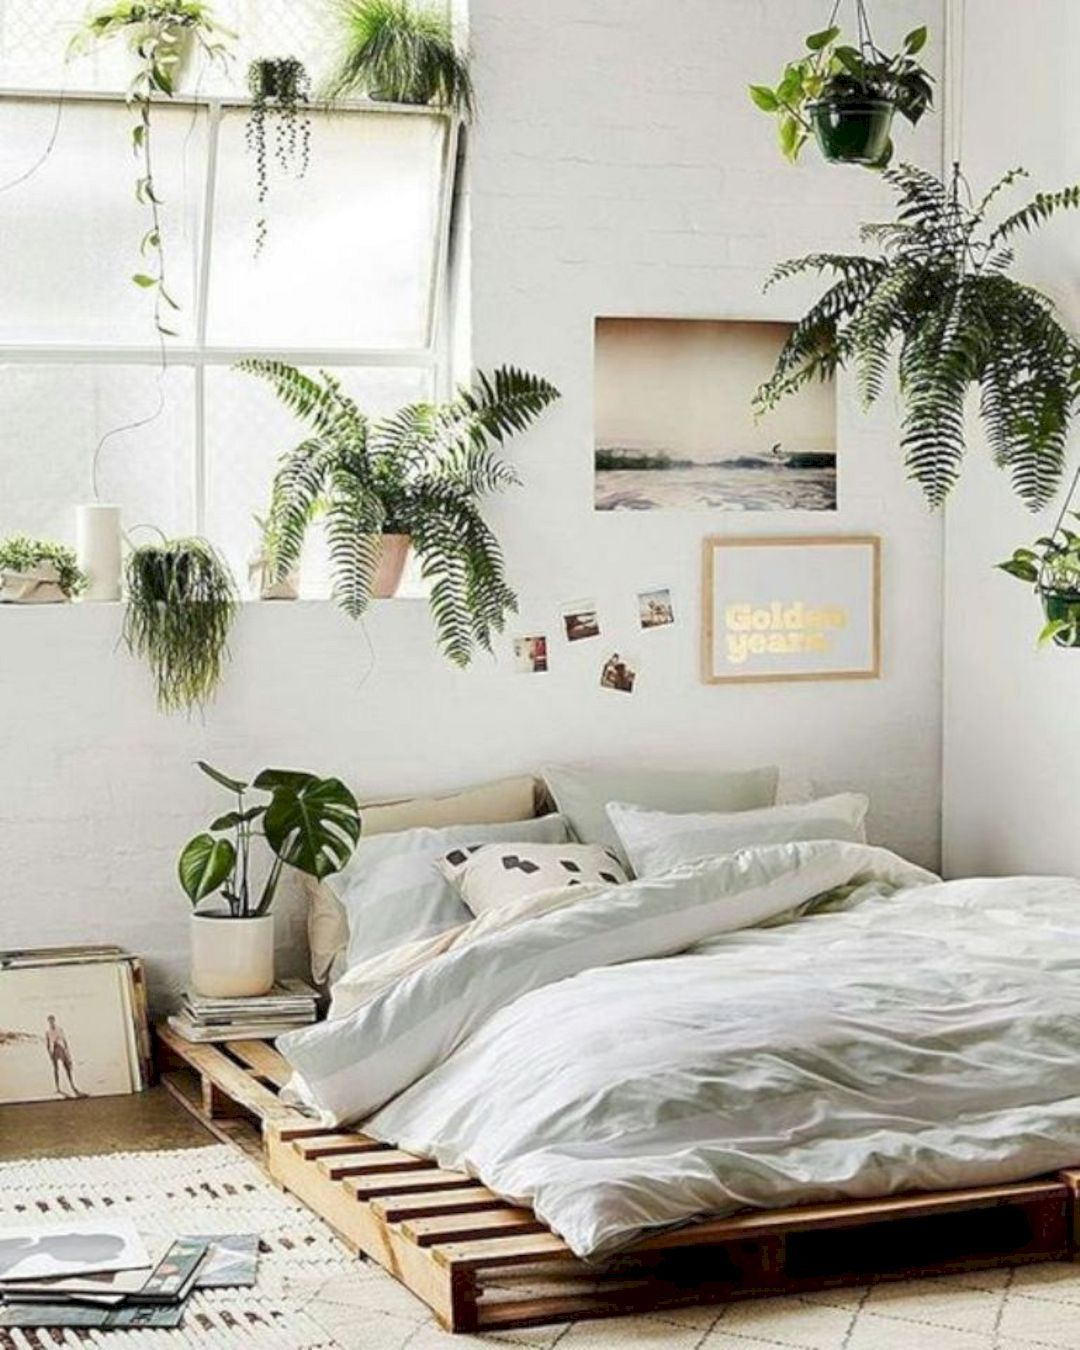 minimalist home interior design ideas https futuristarchitecture also serenely bedrooms to help you embrace simple comforts rh pinterest